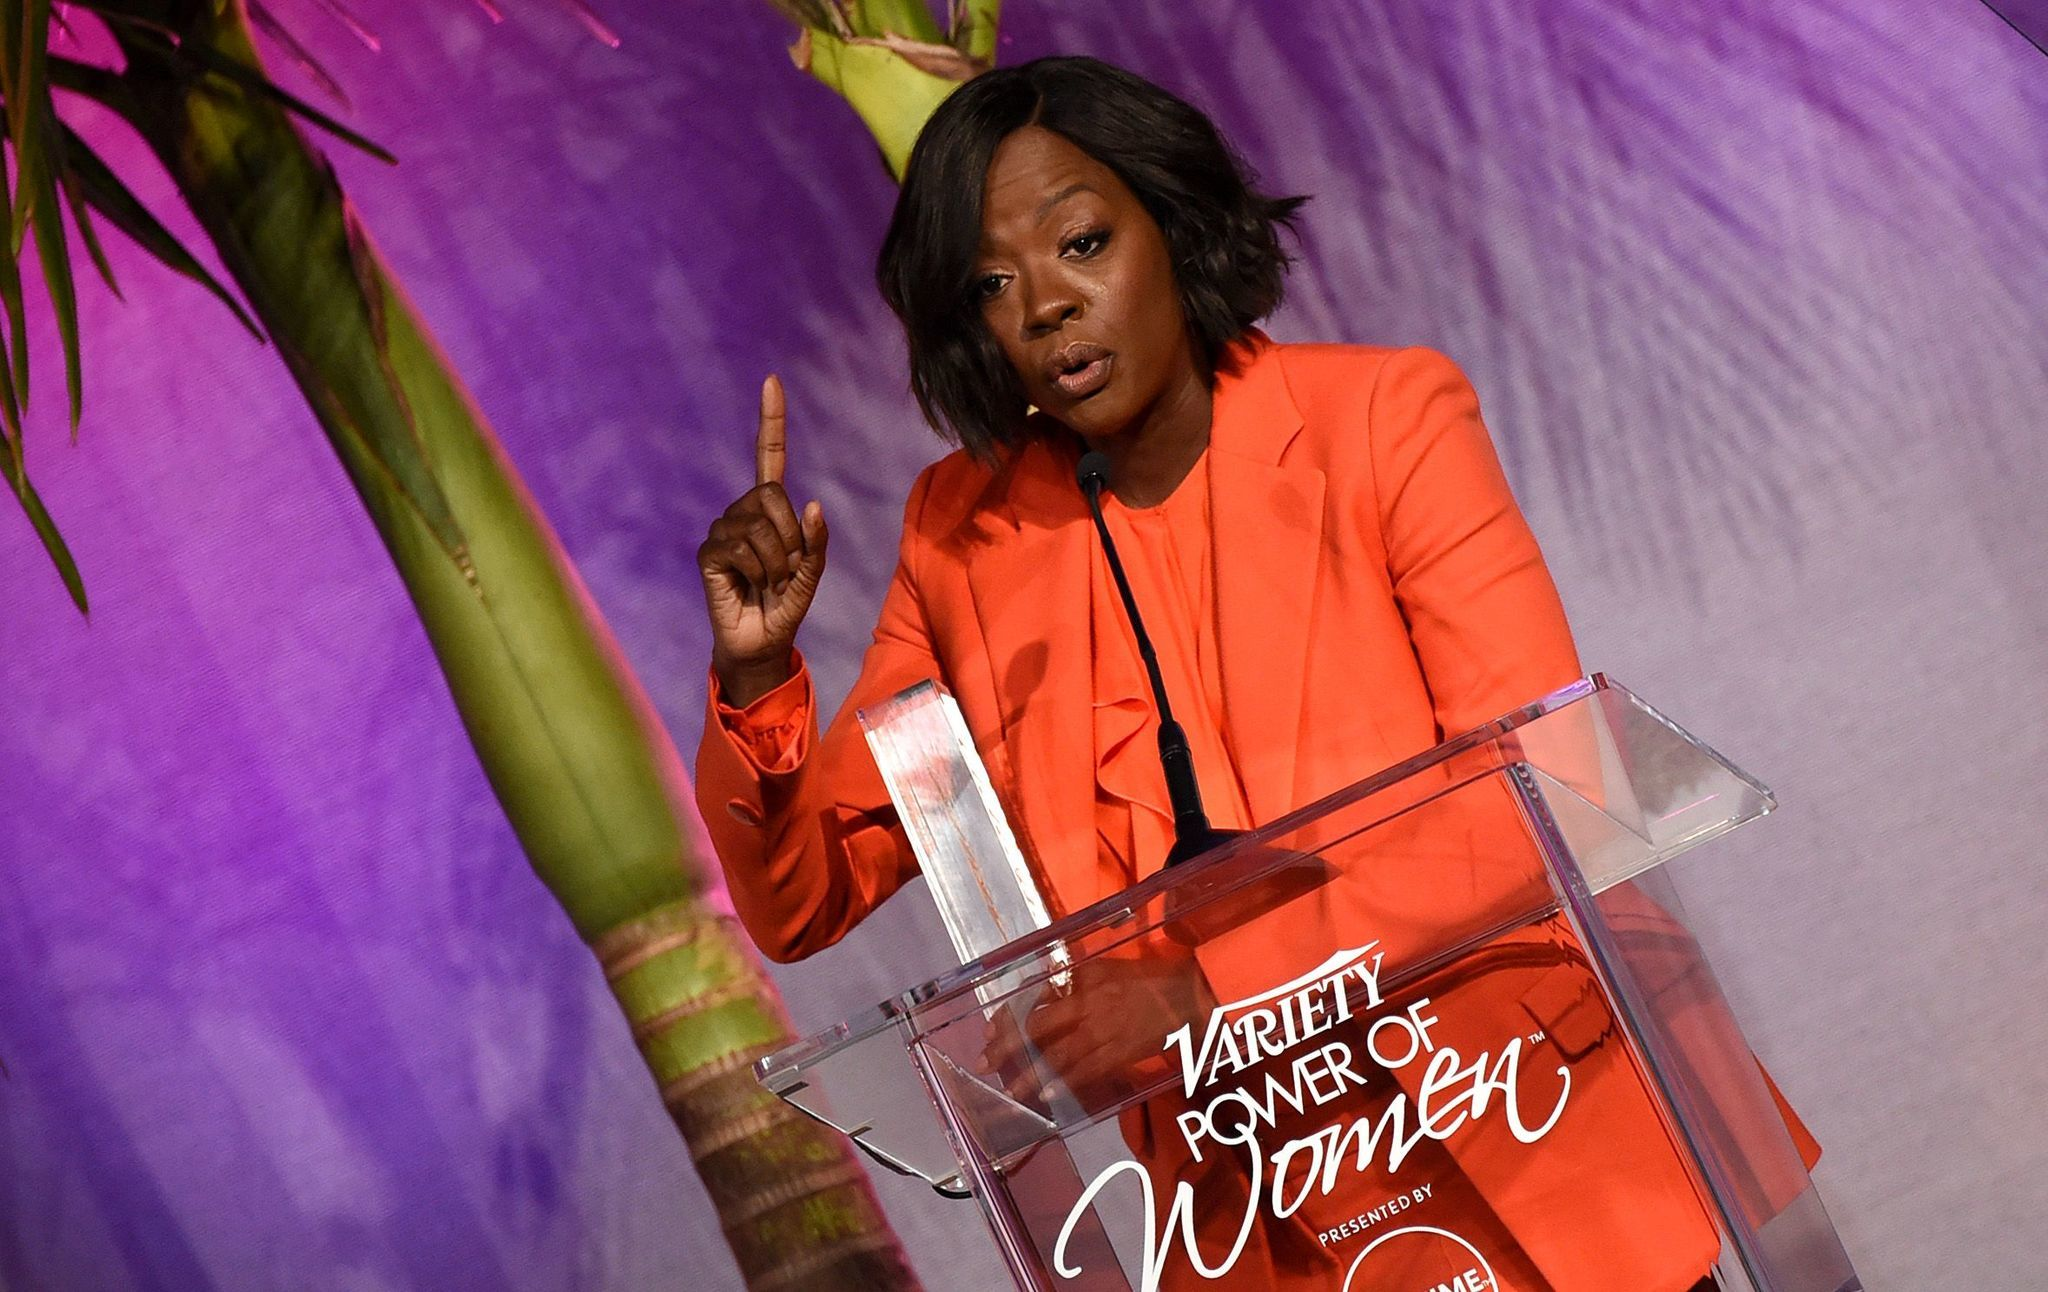 Viola Davis onstage at Variety's Power of Women luncheon.